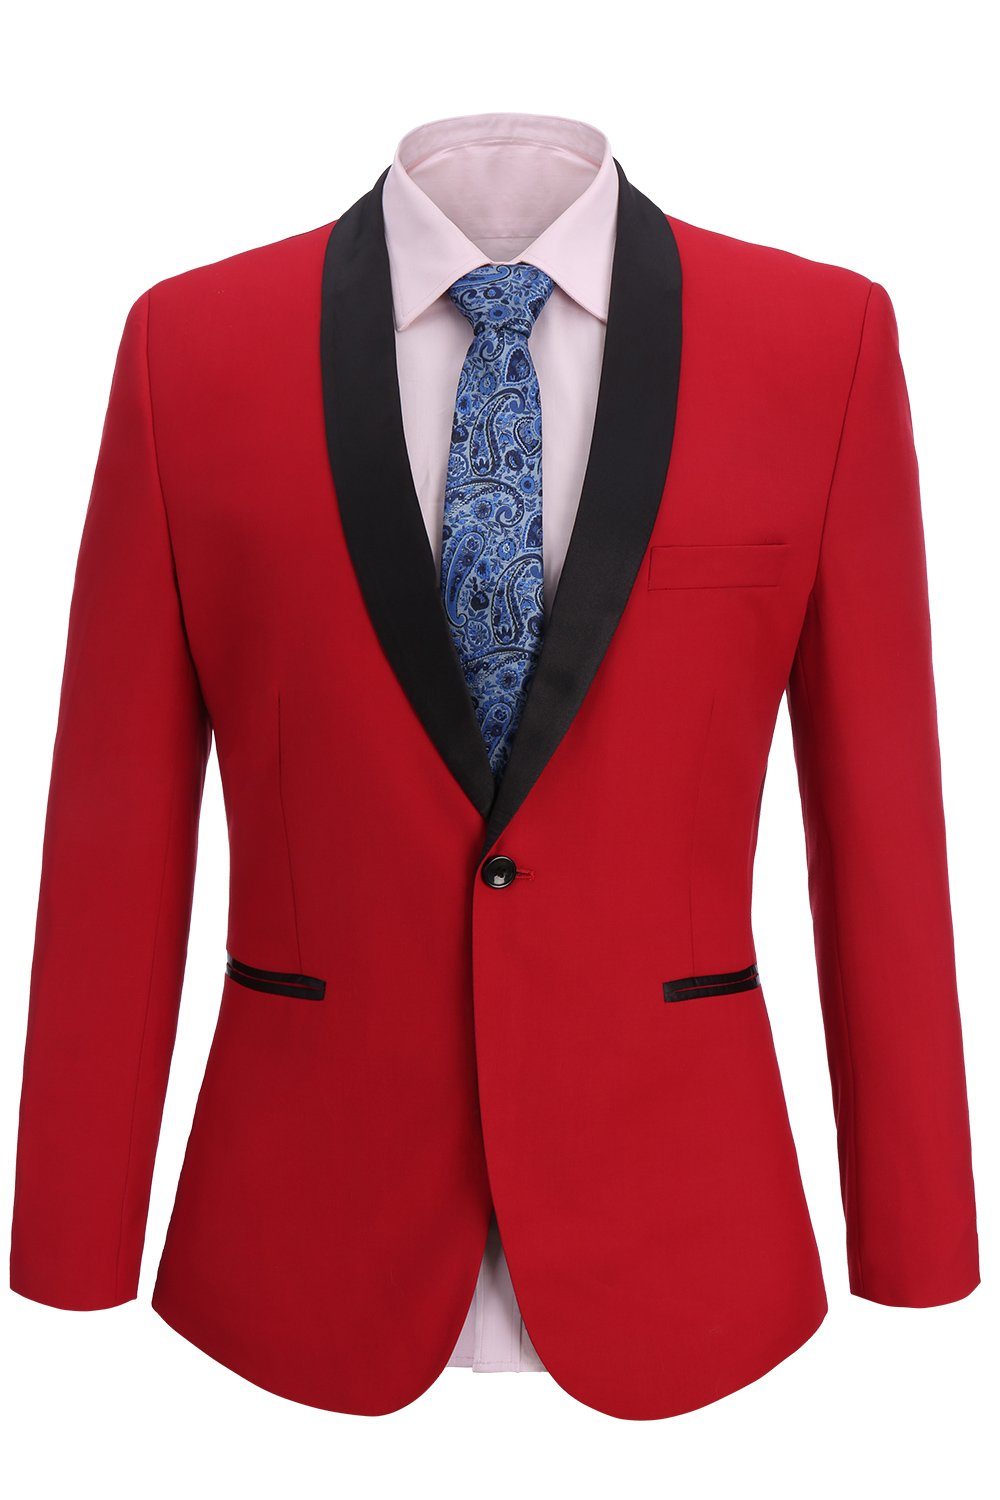 FISOUL Men's Suit Skinny Fit Suit Jacket Stylish Casual Single Breasted One-Button Blazer Tuxedo